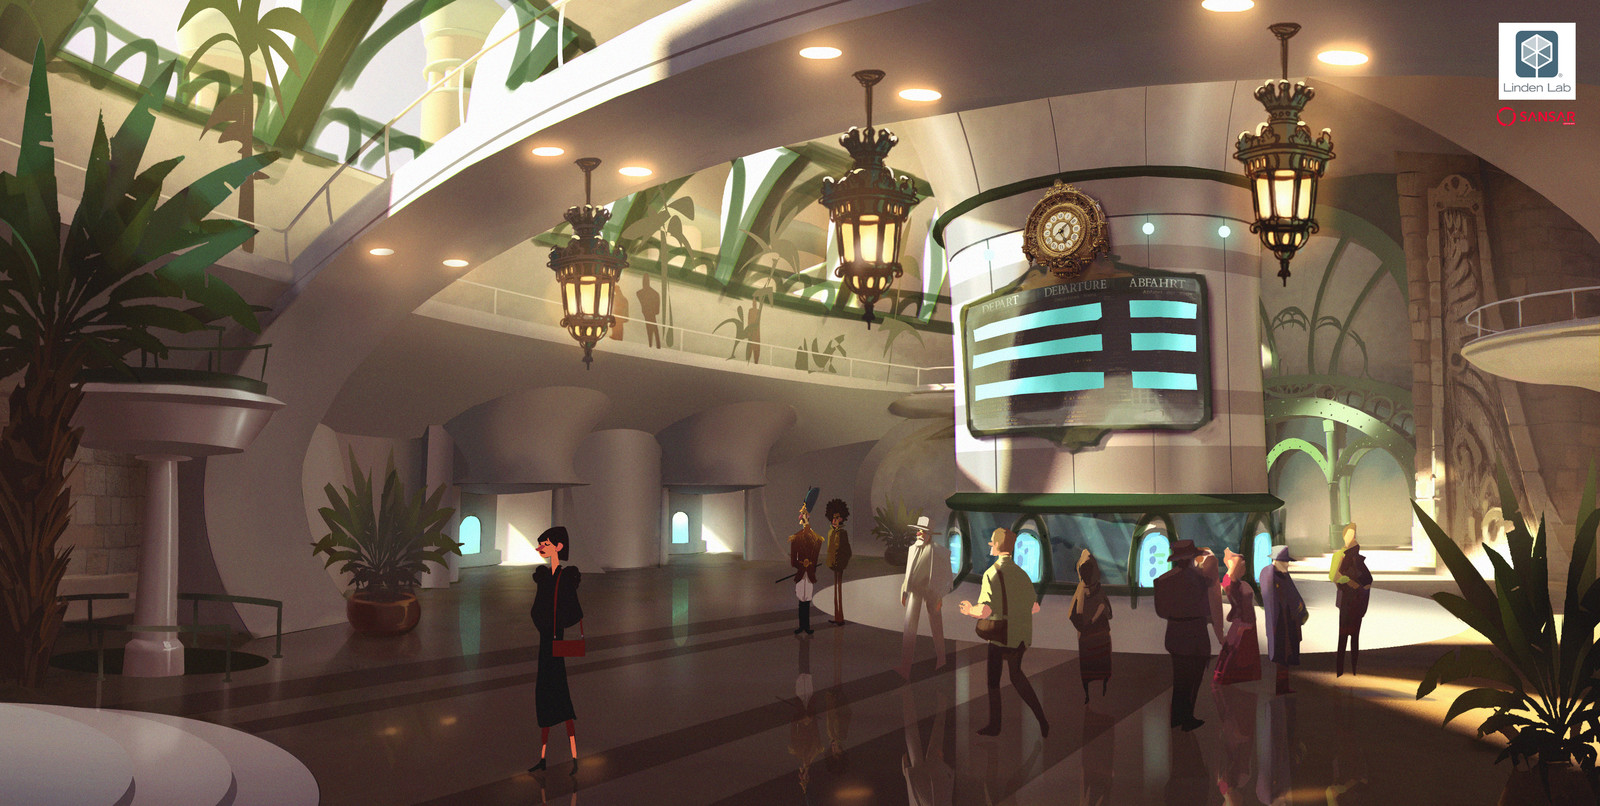 Concepts done in 2015 for Sansar, a social VR experience by Linden Lab